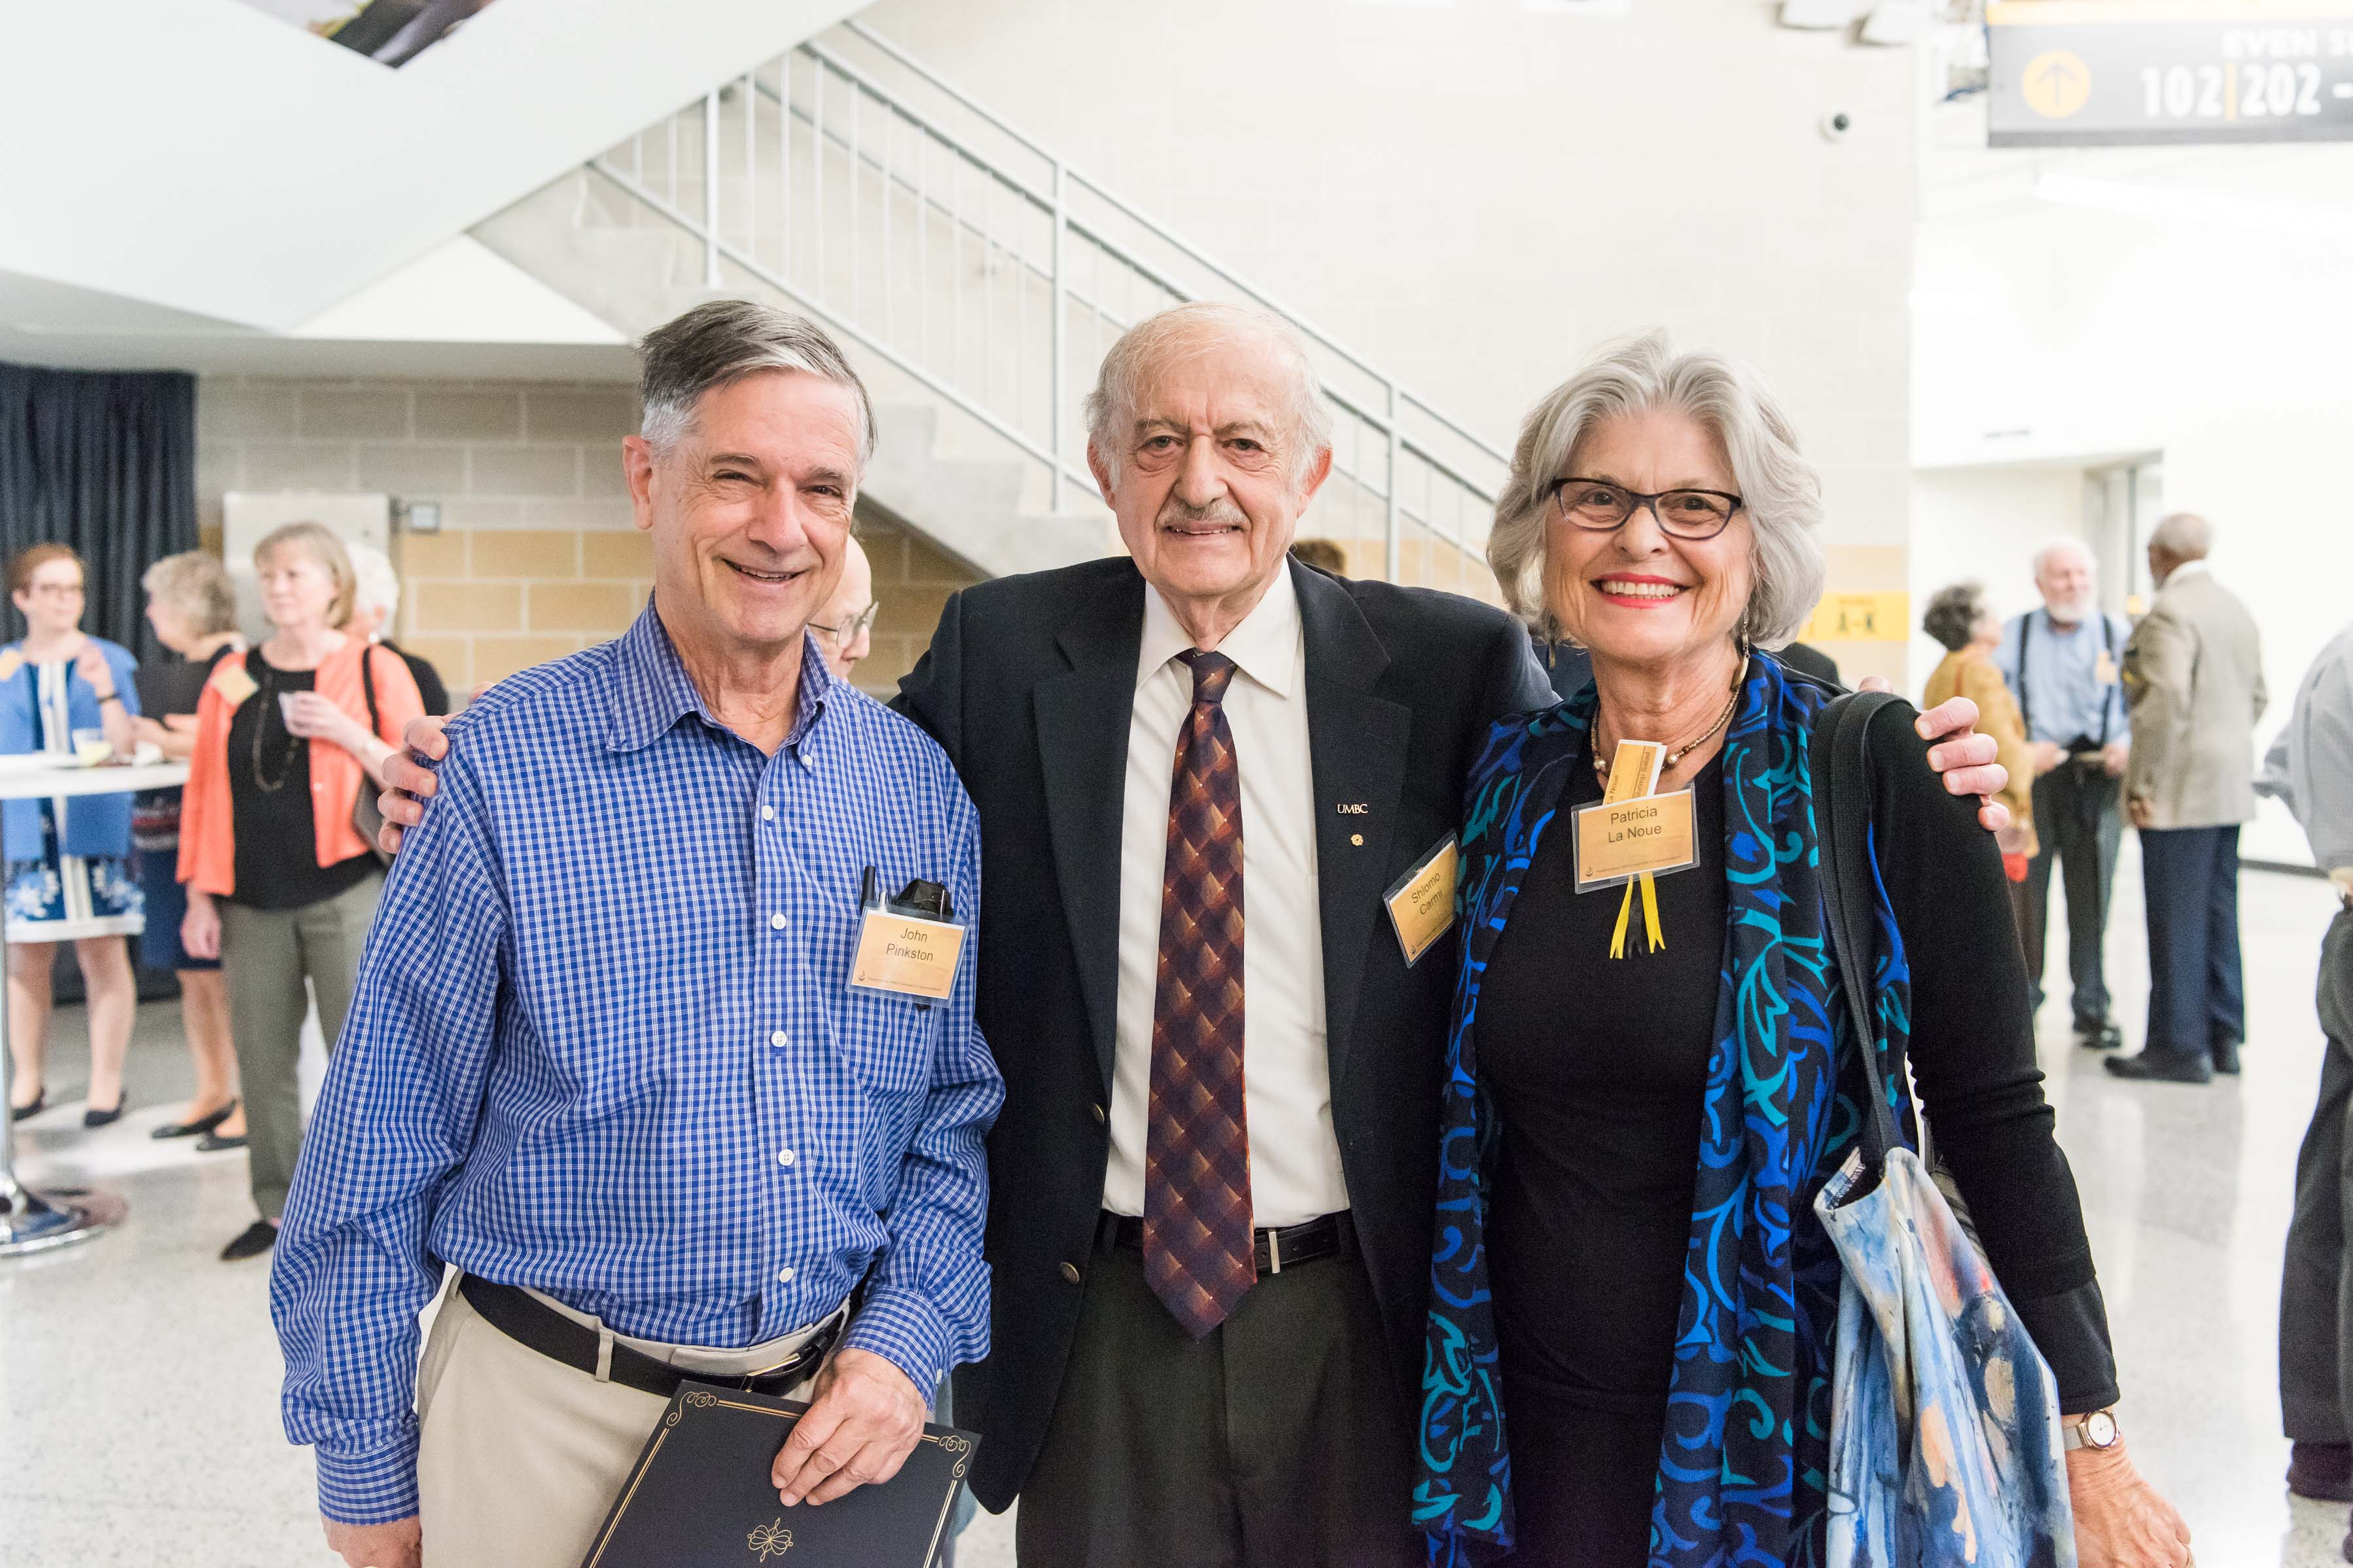 Three people pose together at Wisdom Institute lunch